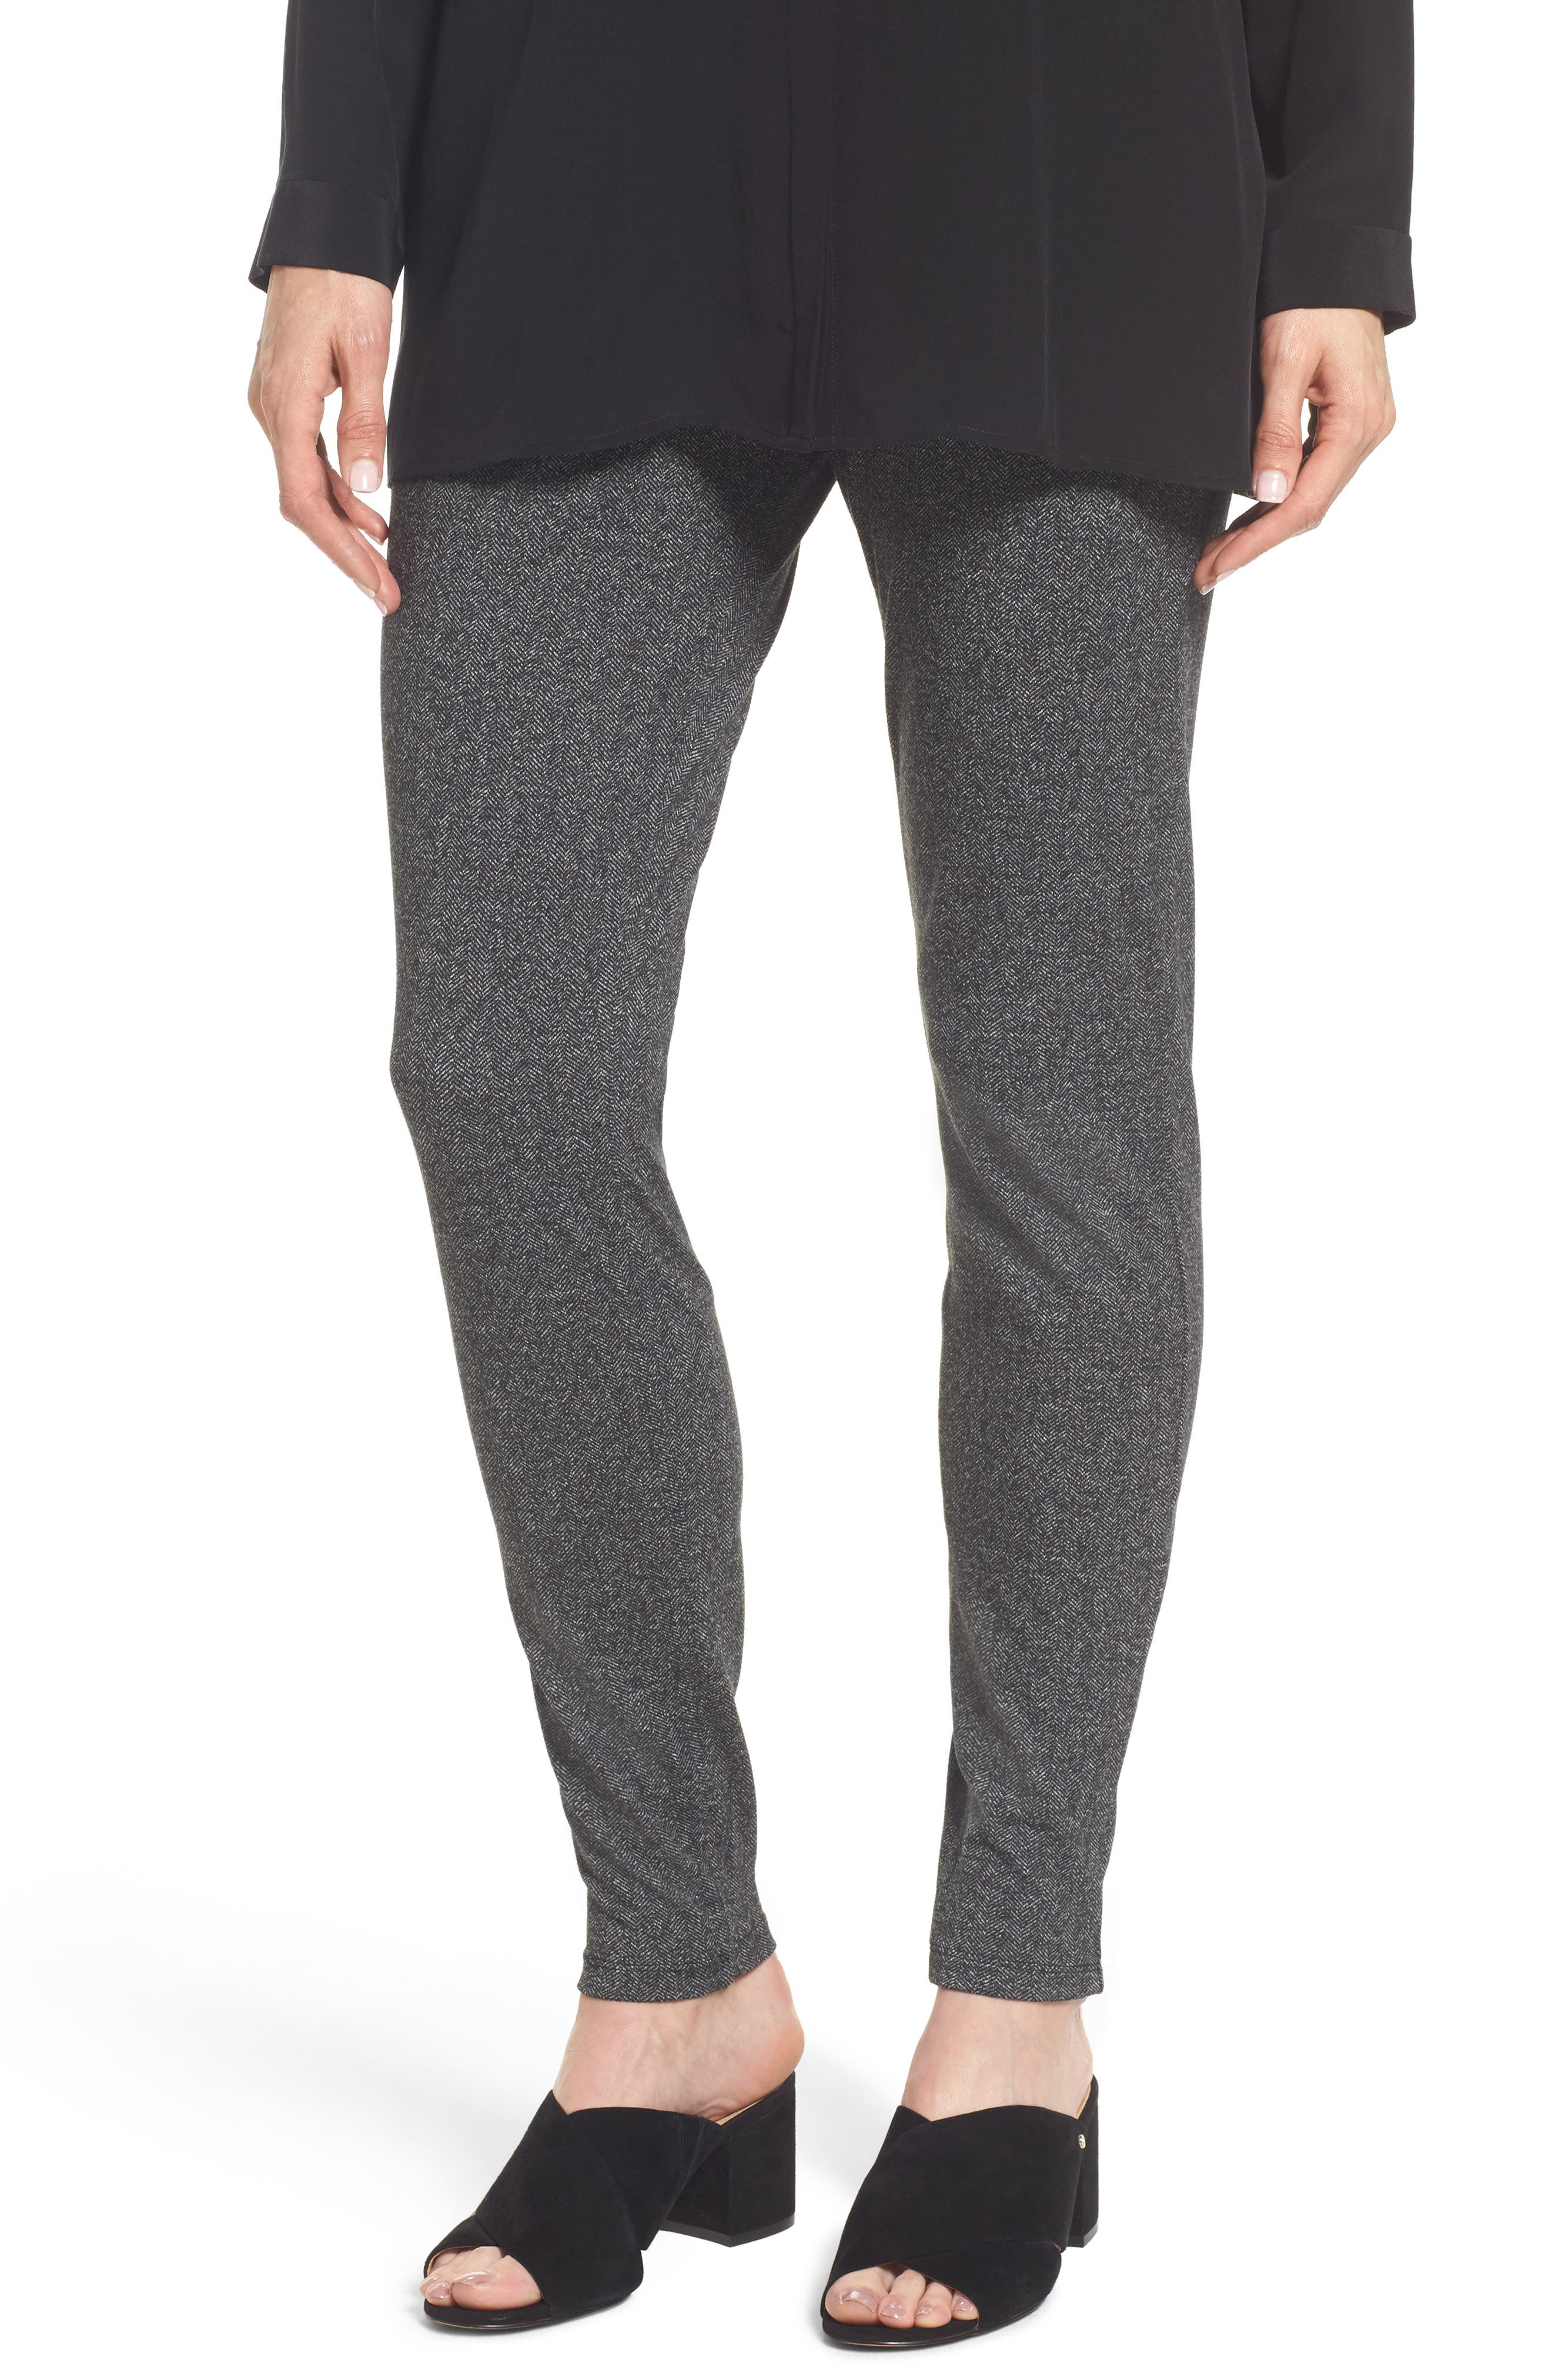 Herringbone Leggings,                         Main,                         color, Charcoal